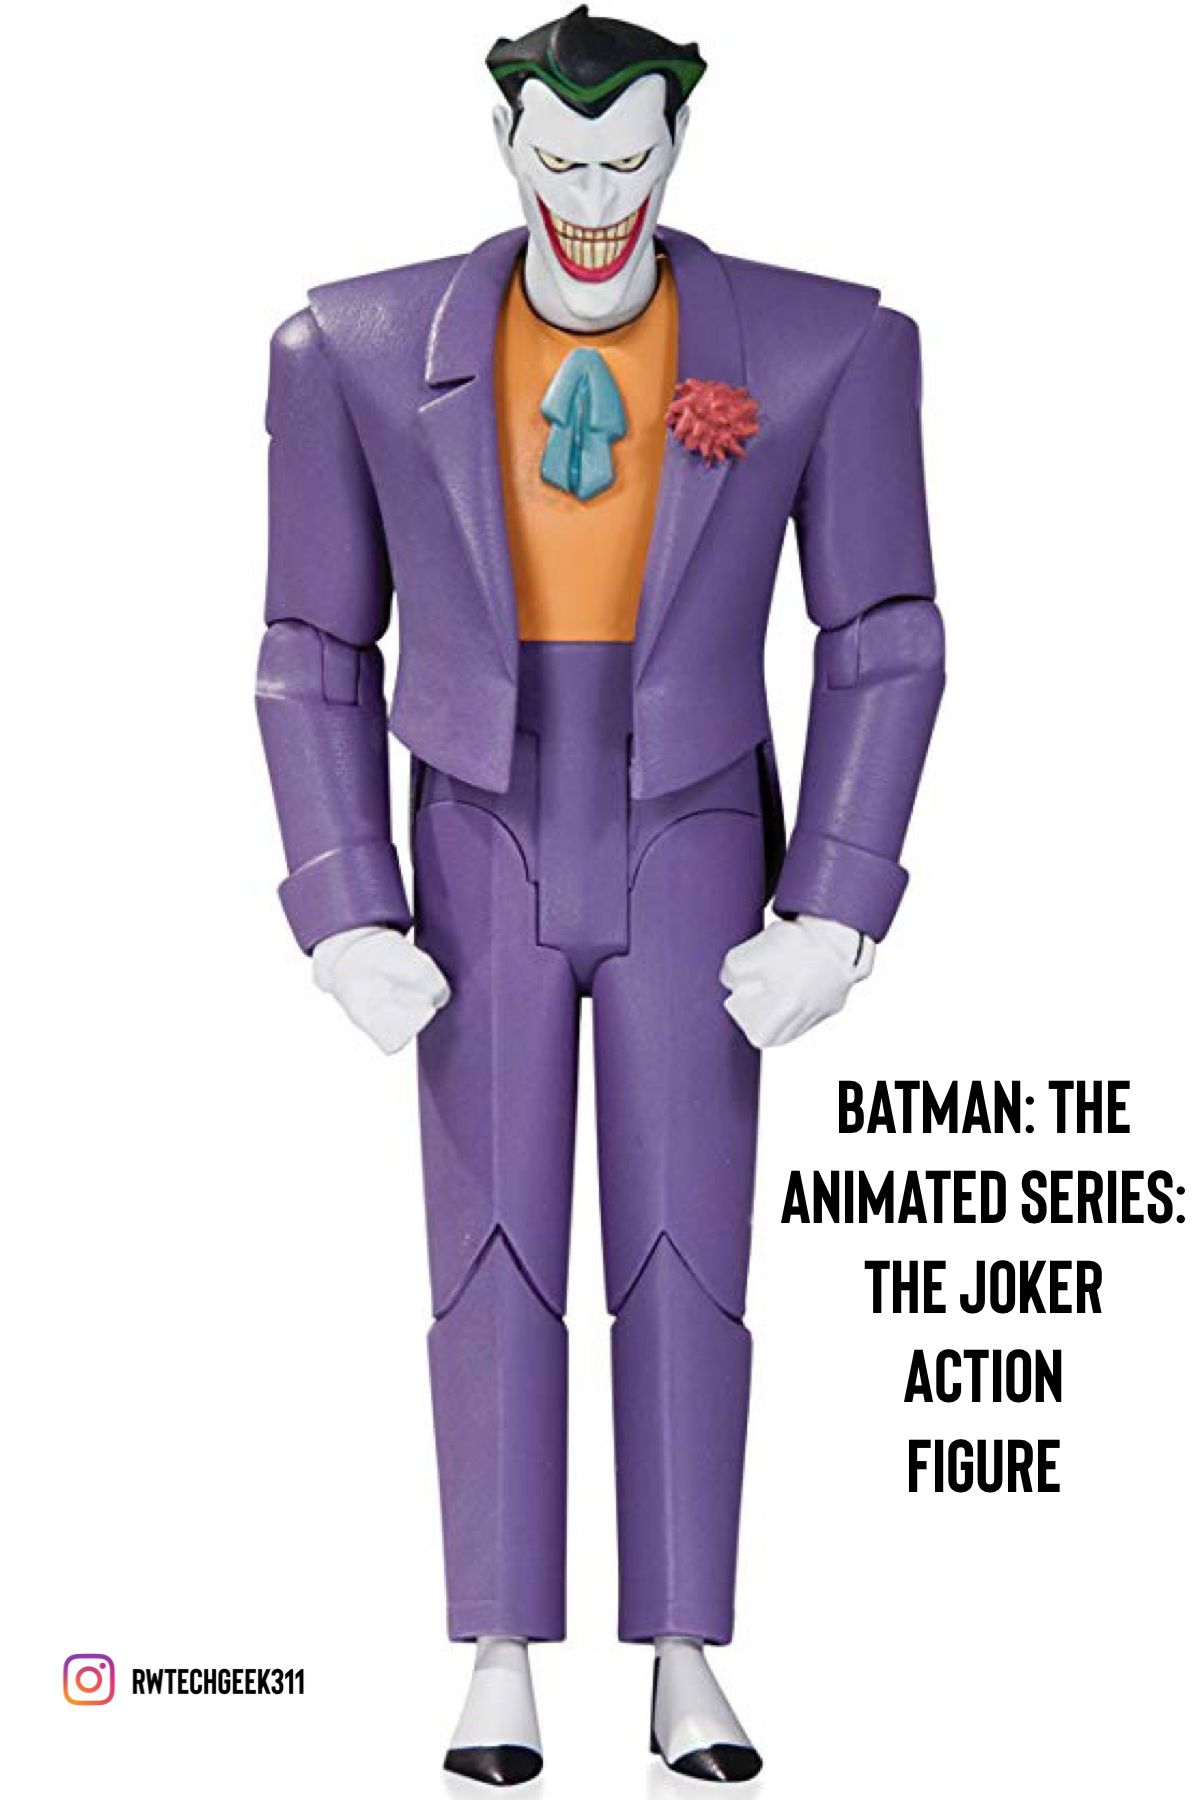 Based On The Designs From The Hit Show Batman The Animated Series